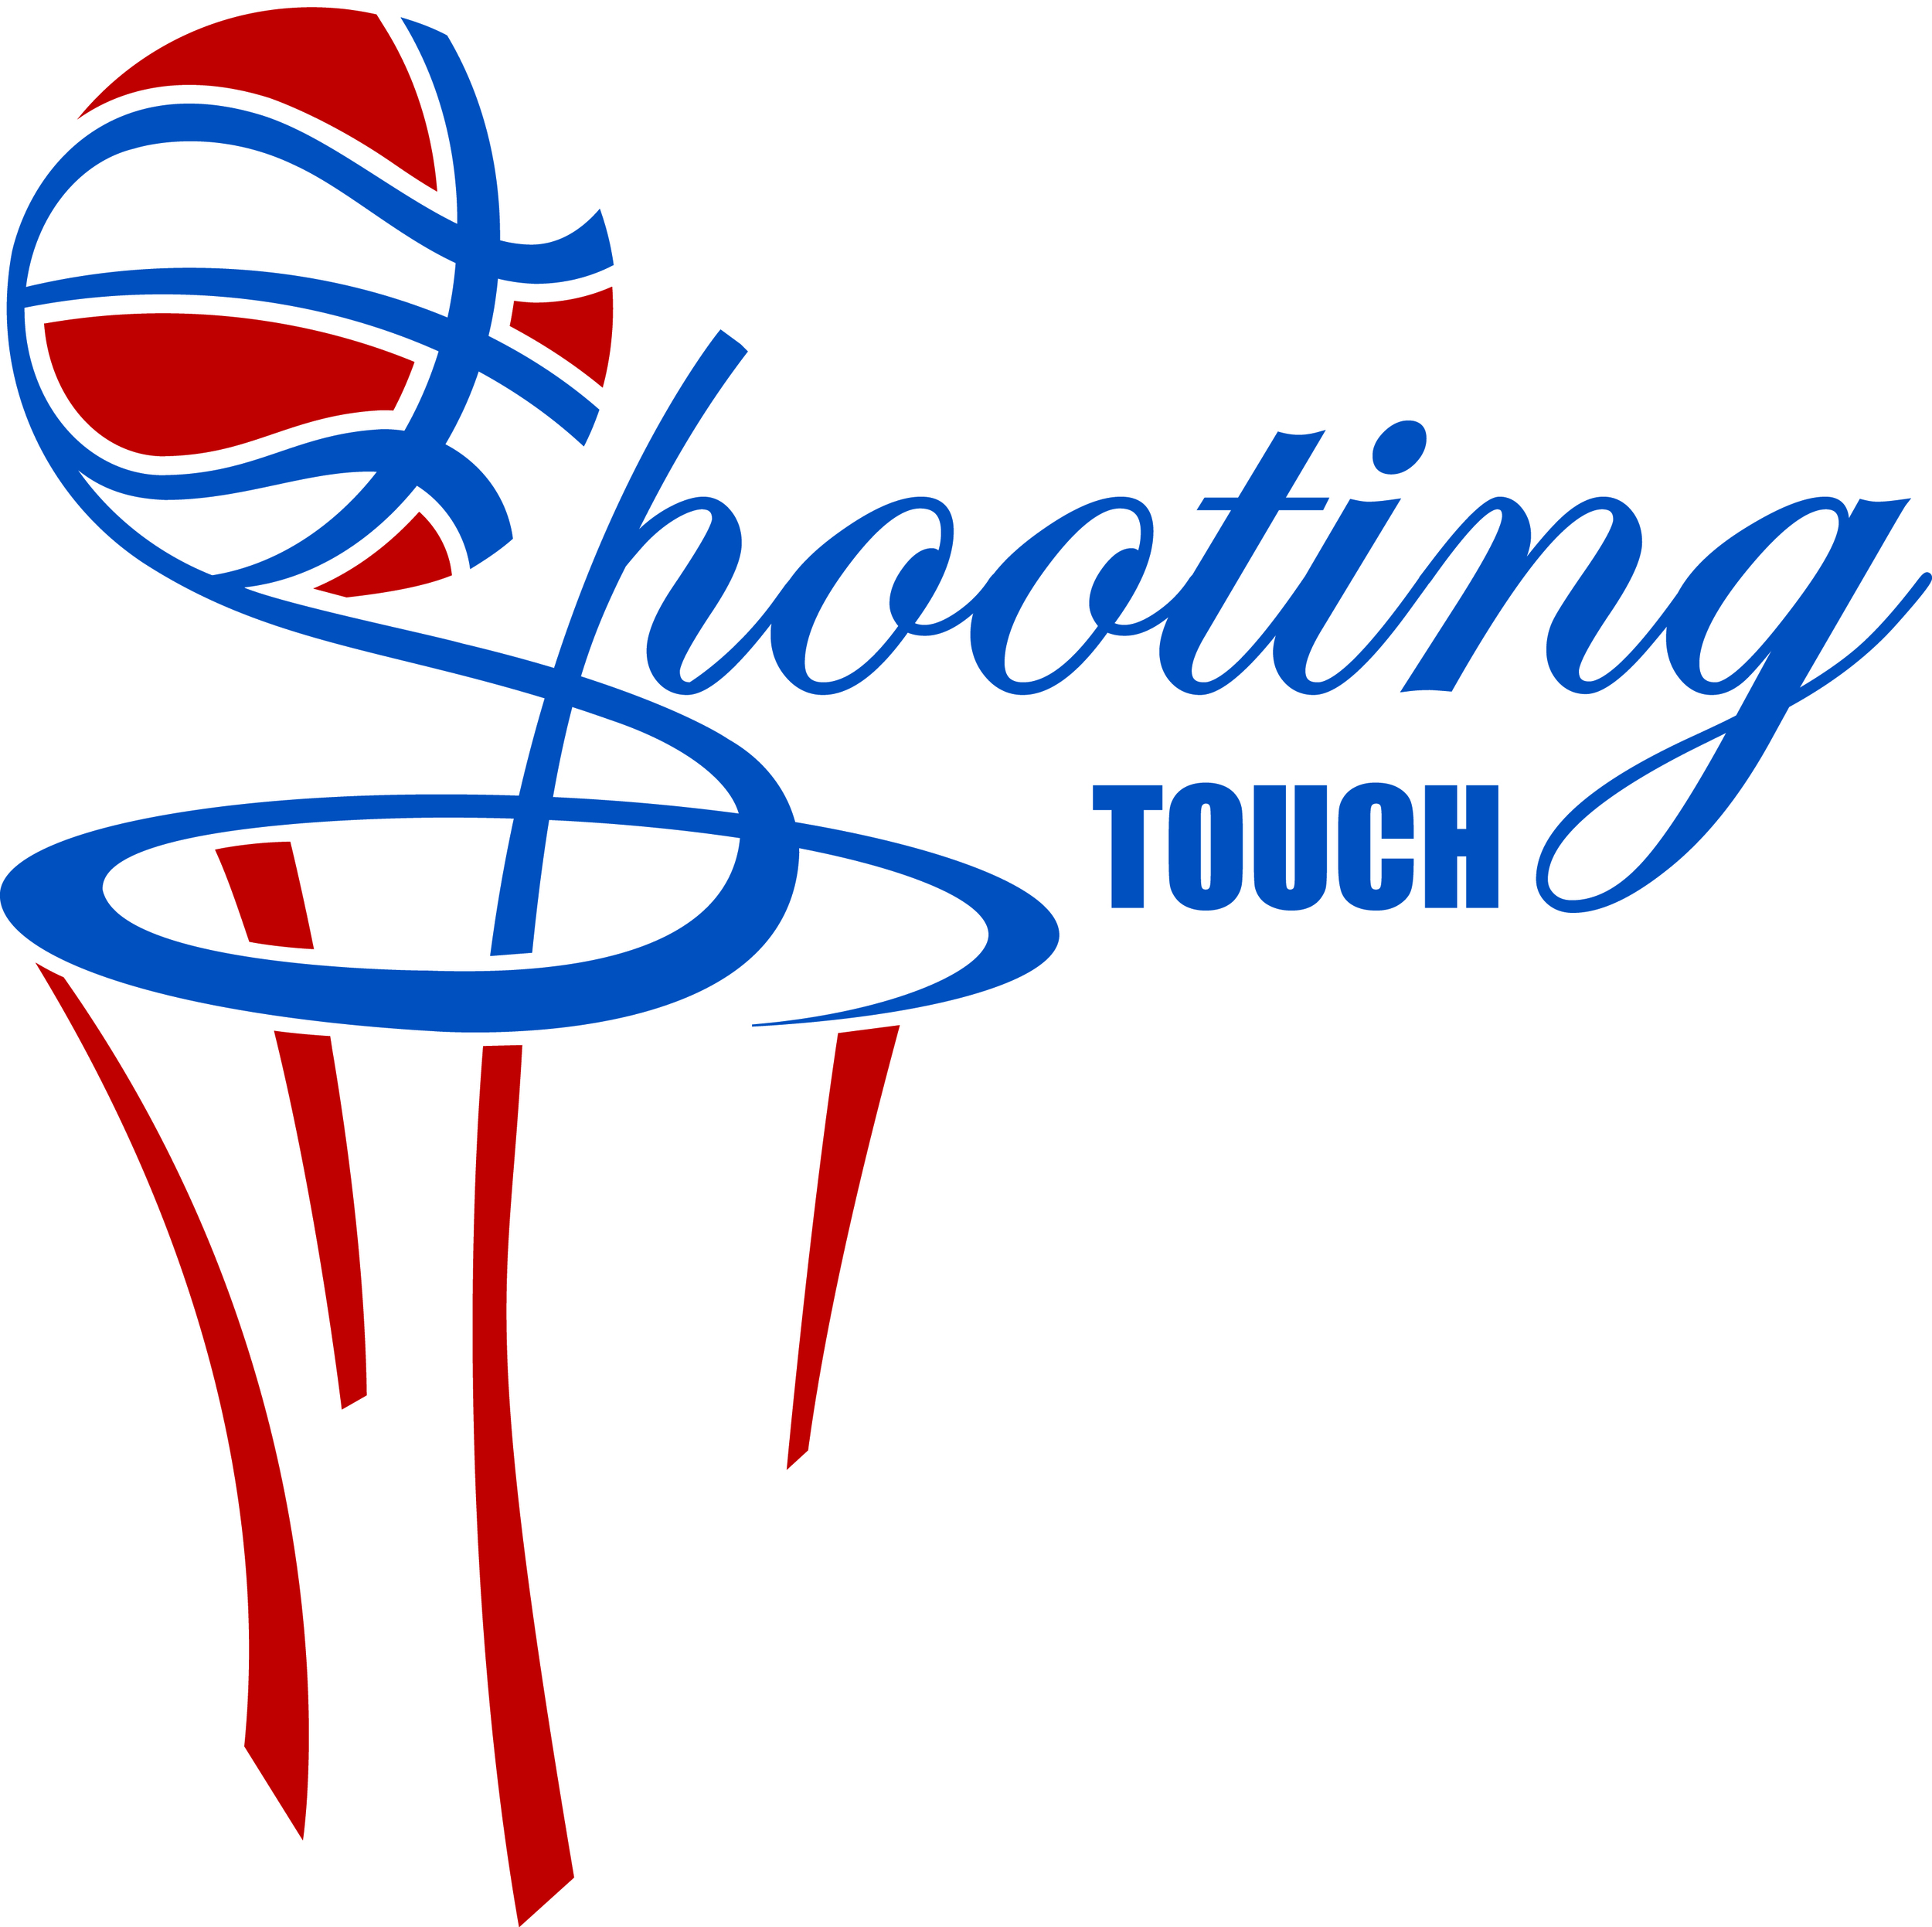 shooting touch logo.jpeg